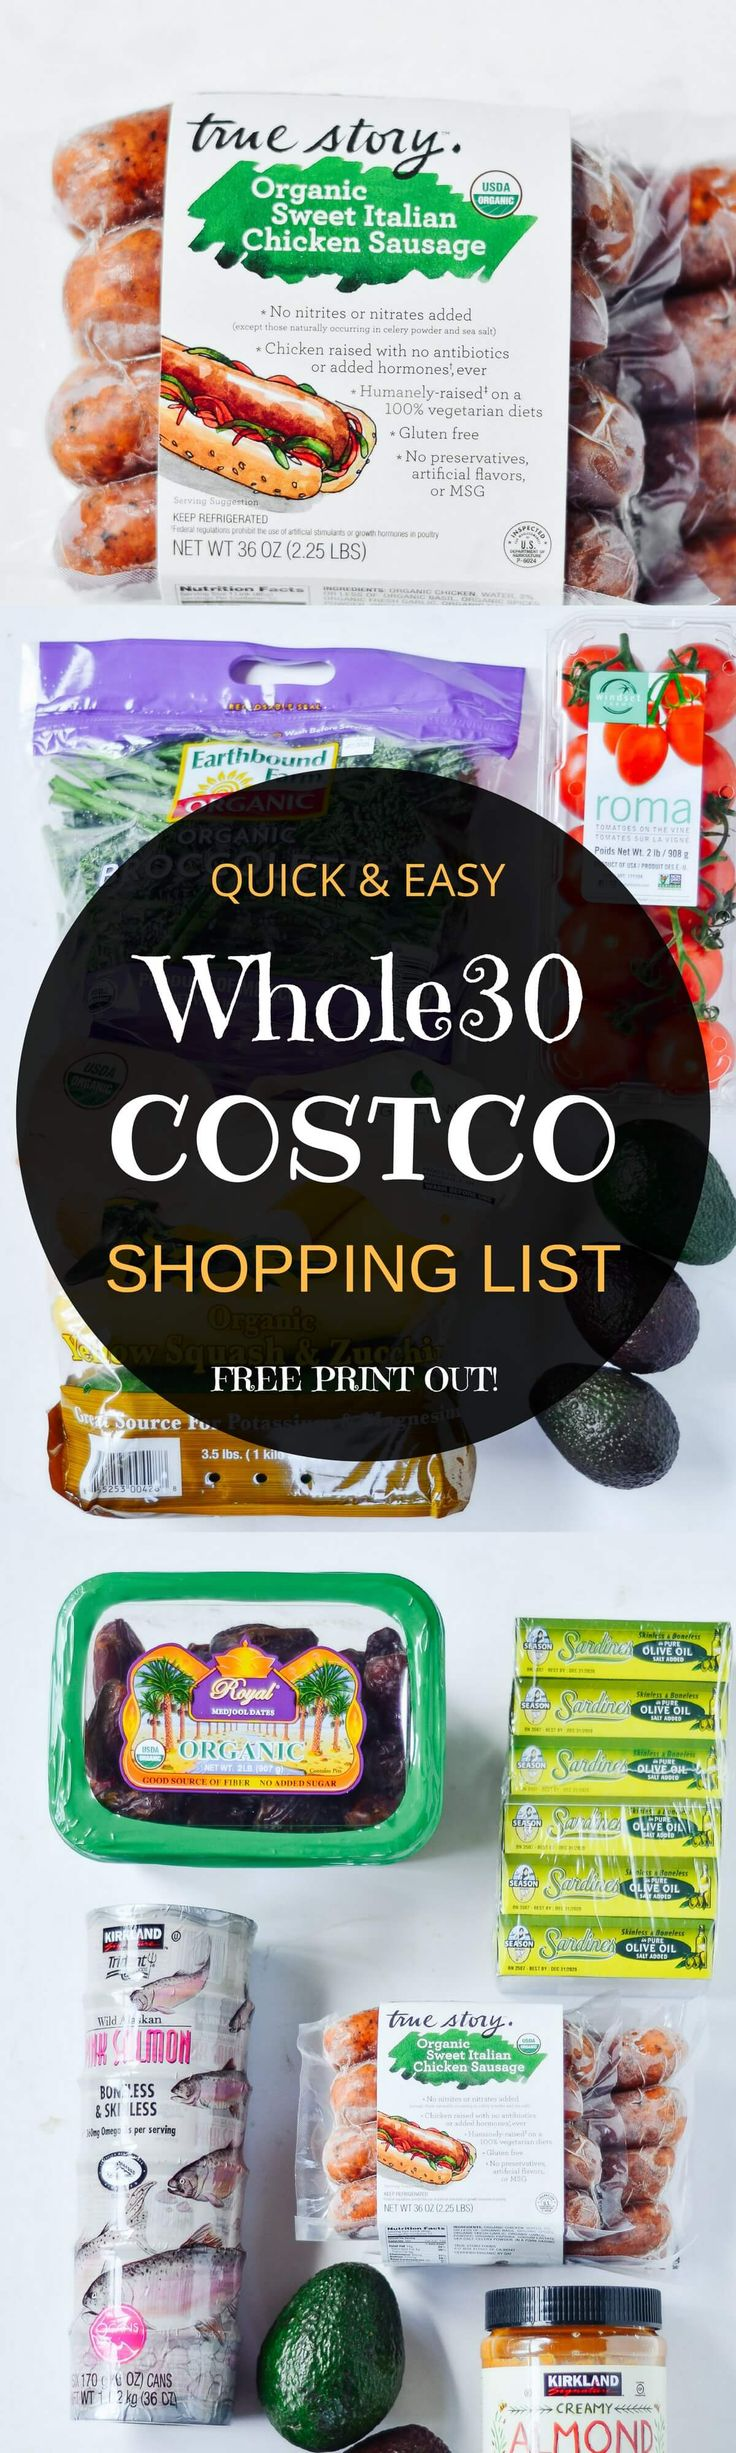 Best Whole30 and paleo shopping list!! Complete with how to read the labels guide and checkboxes for all your whole30 needs! Shop with ease! Eat like a whole30 king! Free shopping list & shopping guide printout! Whole30 shopping list. Whole30 Costco shopp http://www.skinnymefat.com